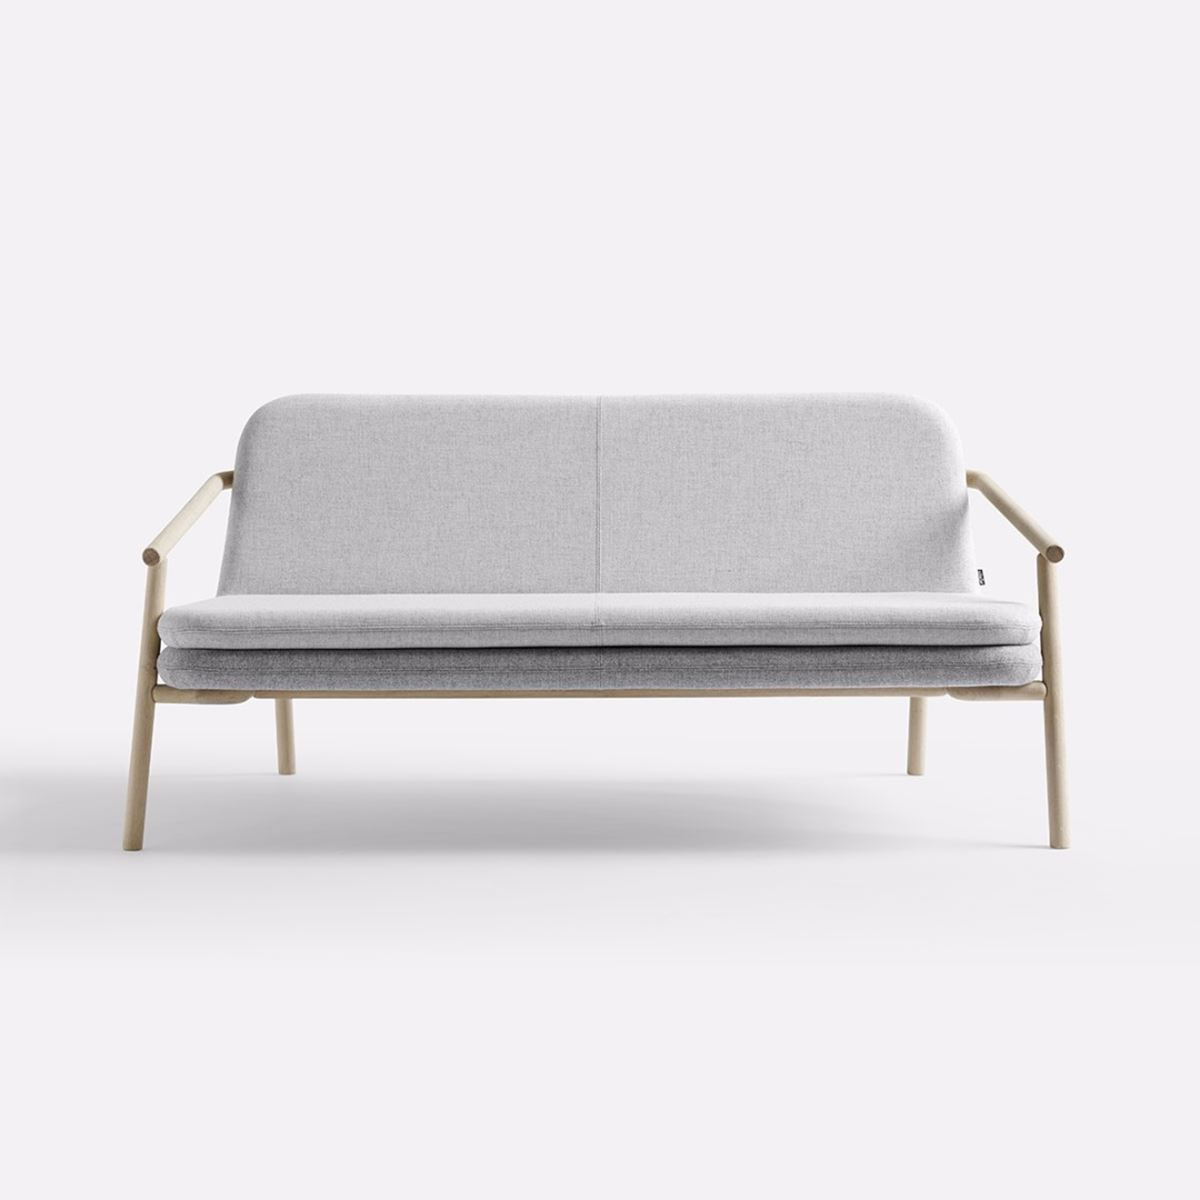 minimal sofa design cream colored sectional 43halle for now kollektion plus halle bruno